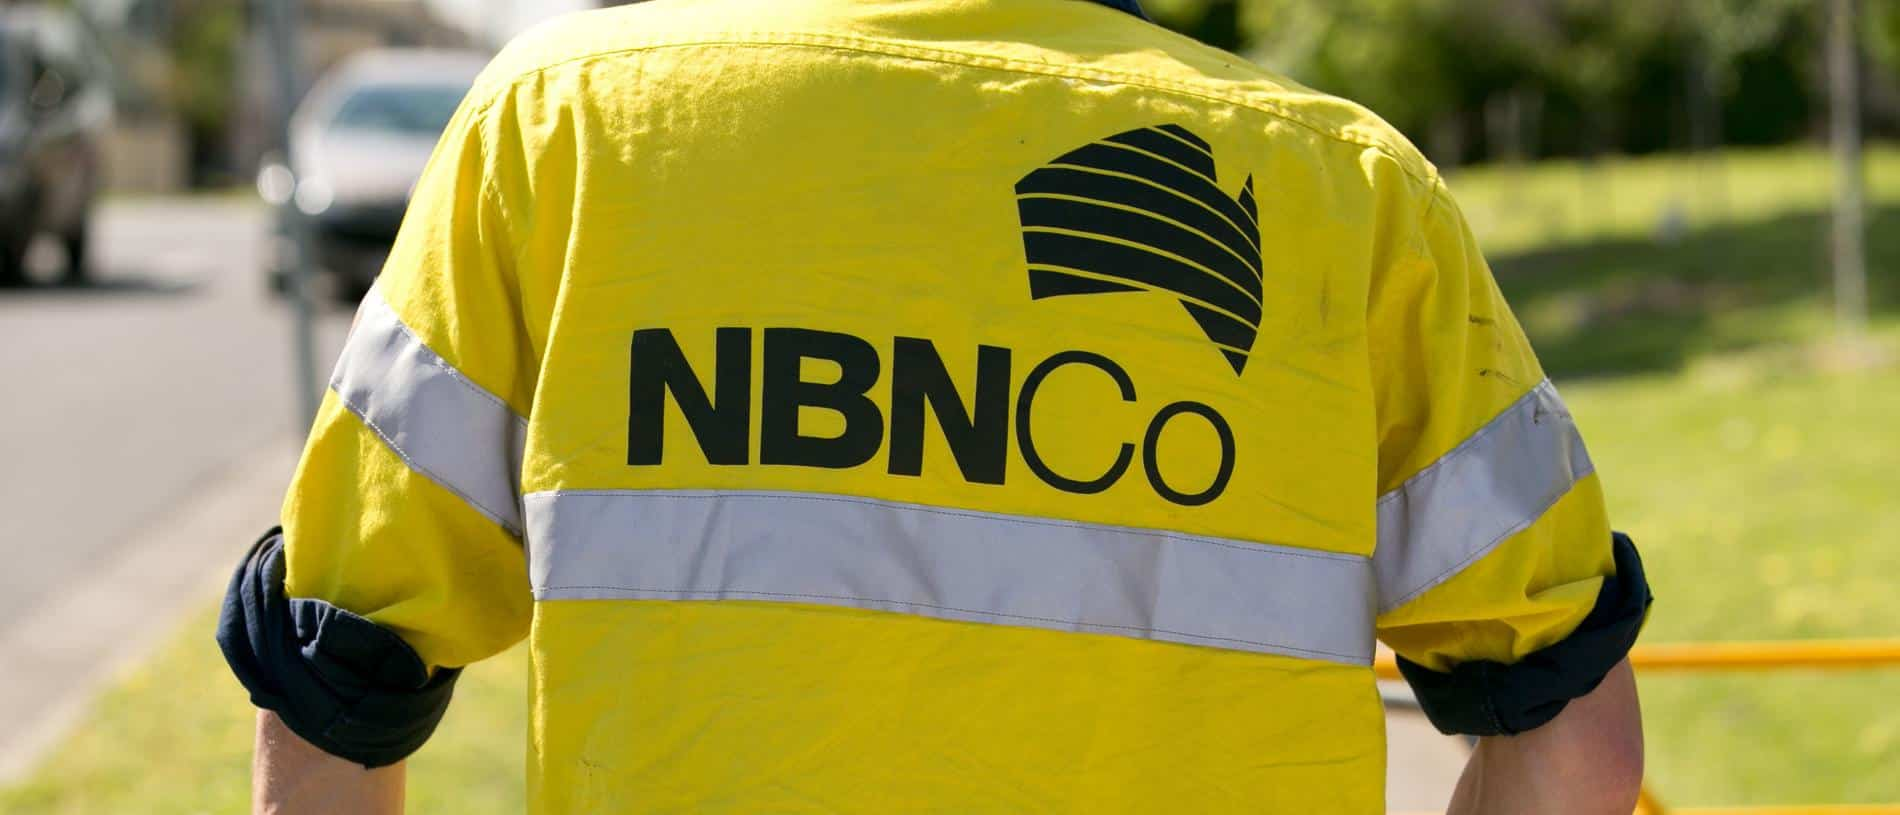 NBNCo uniform